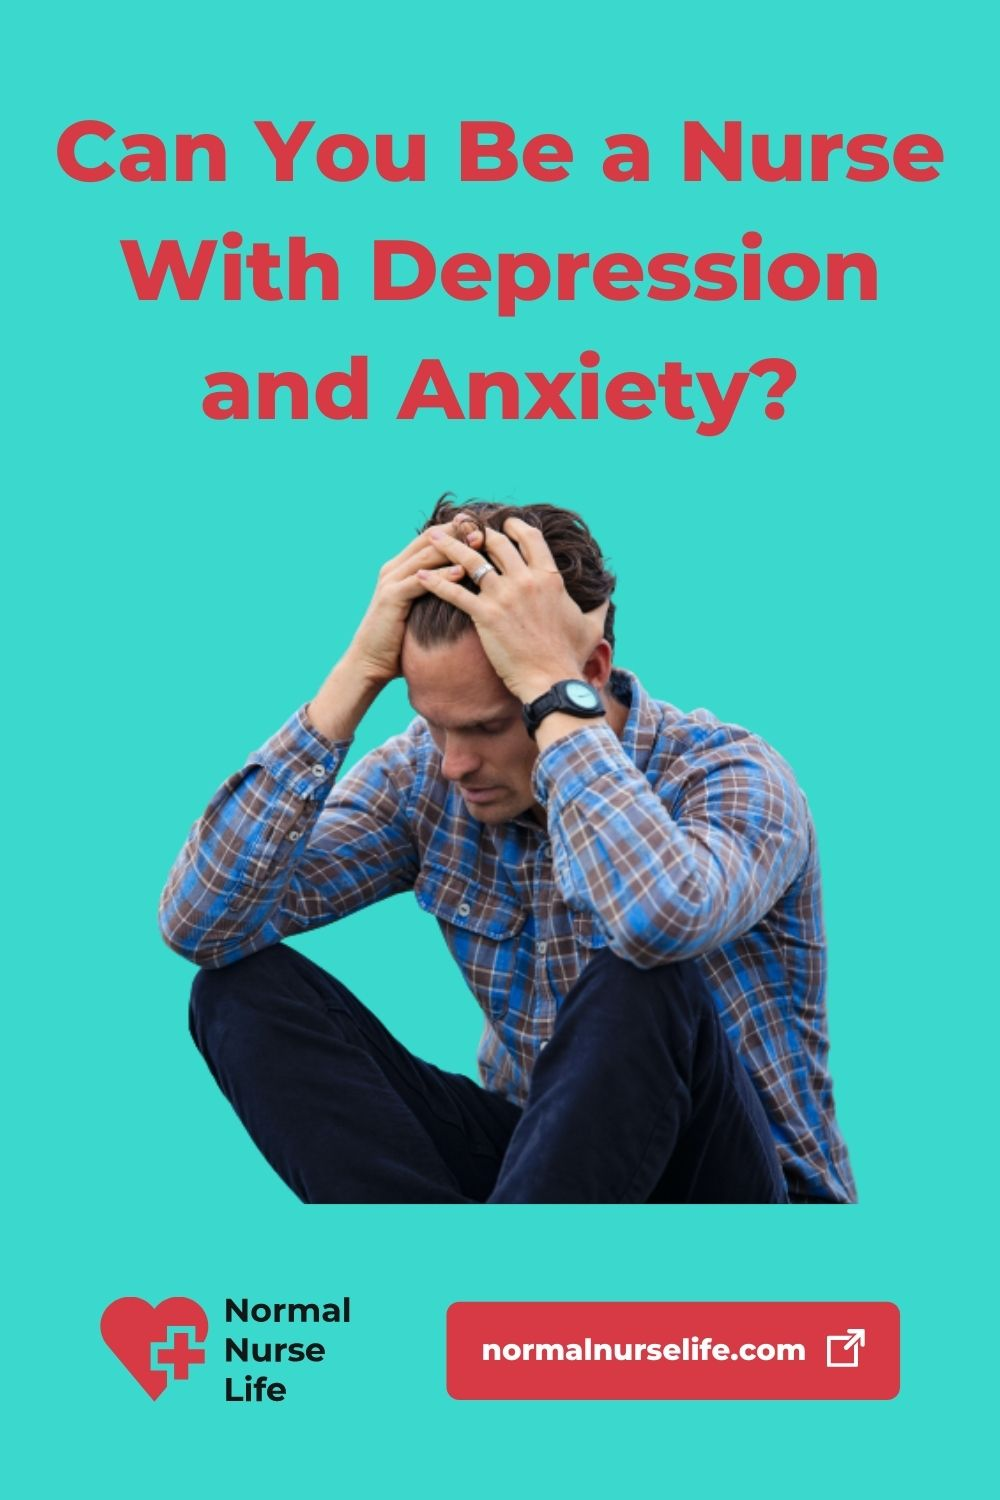 Can you be a nurse with anxiety and depression